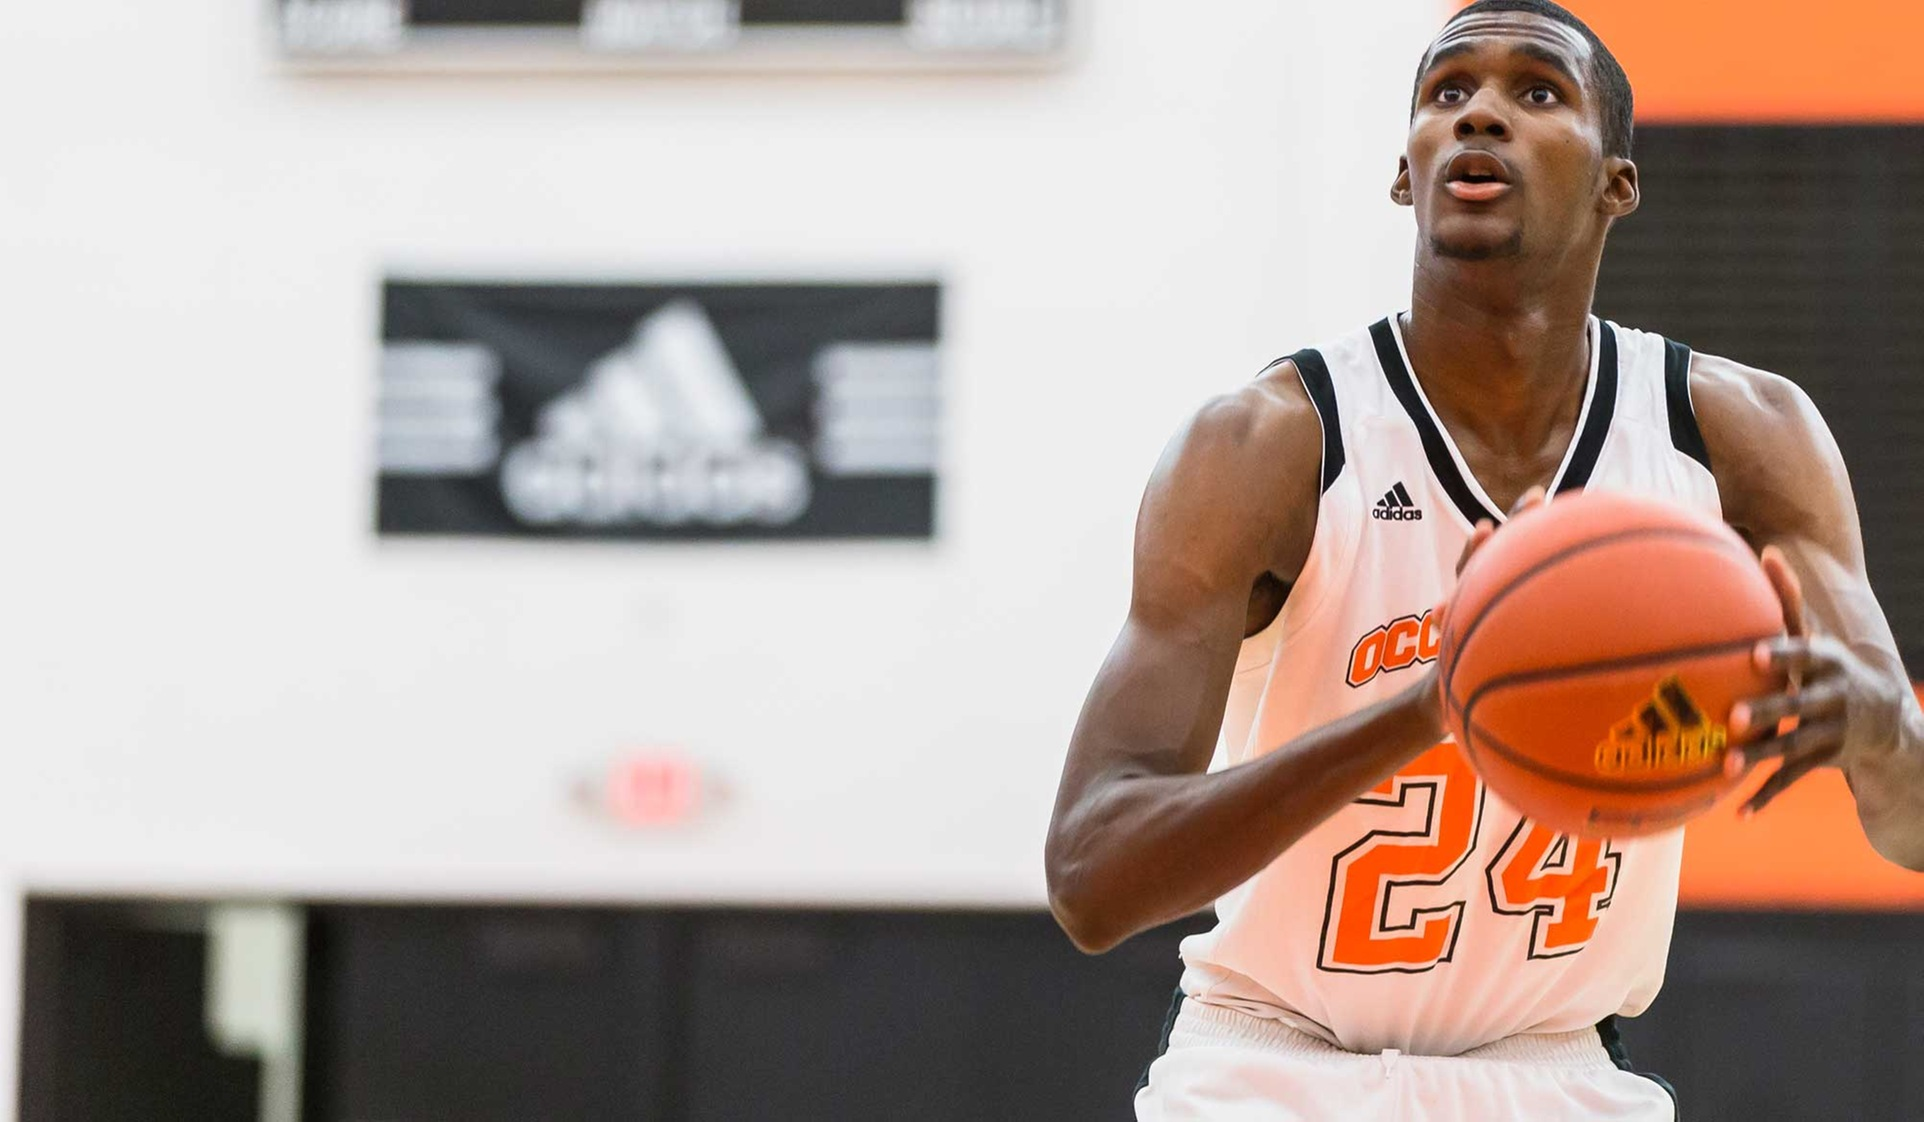 Baines Leads Oxy Past La Verne